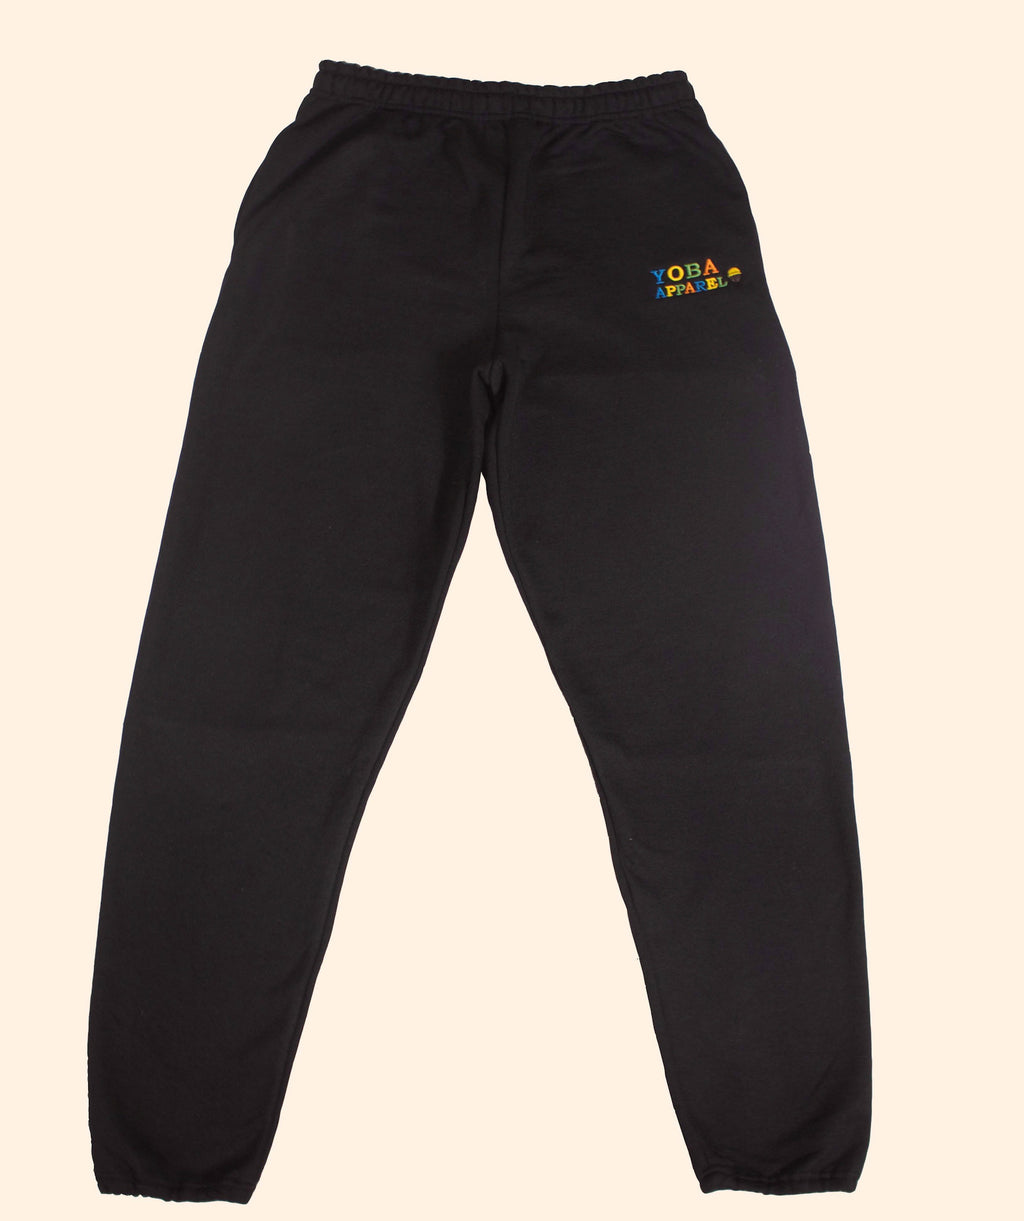 Yoba Sweatpants